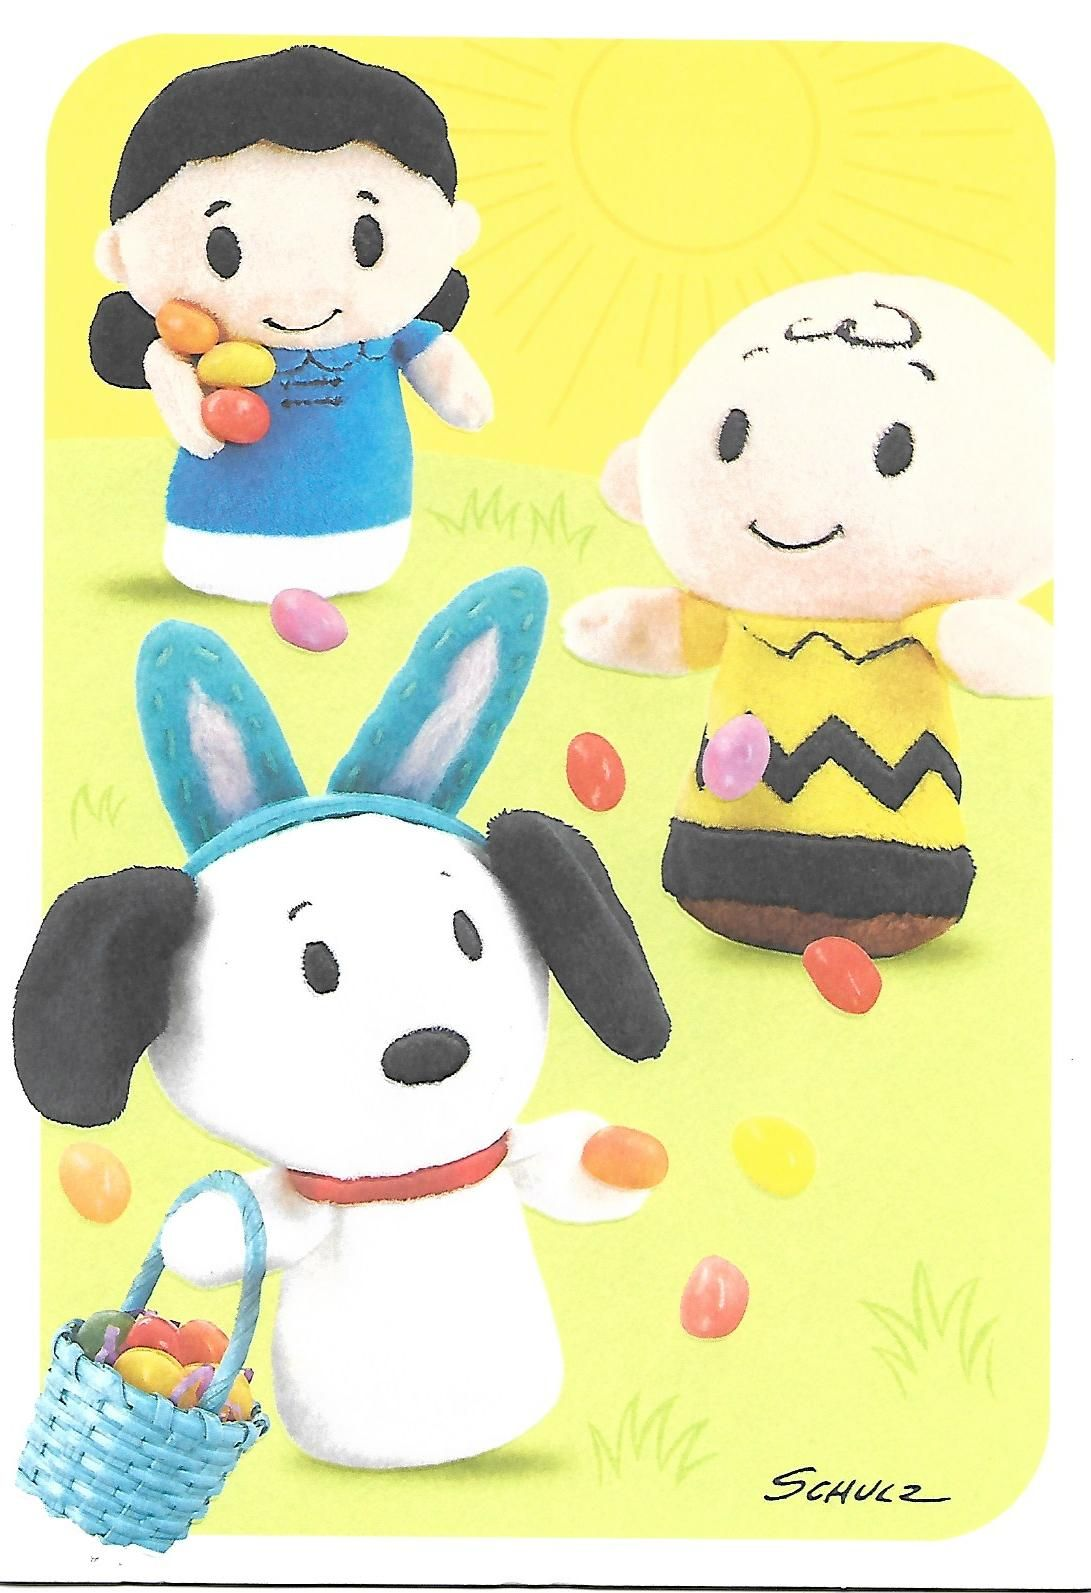 Peanuts itty-bittys Easter greeting card front